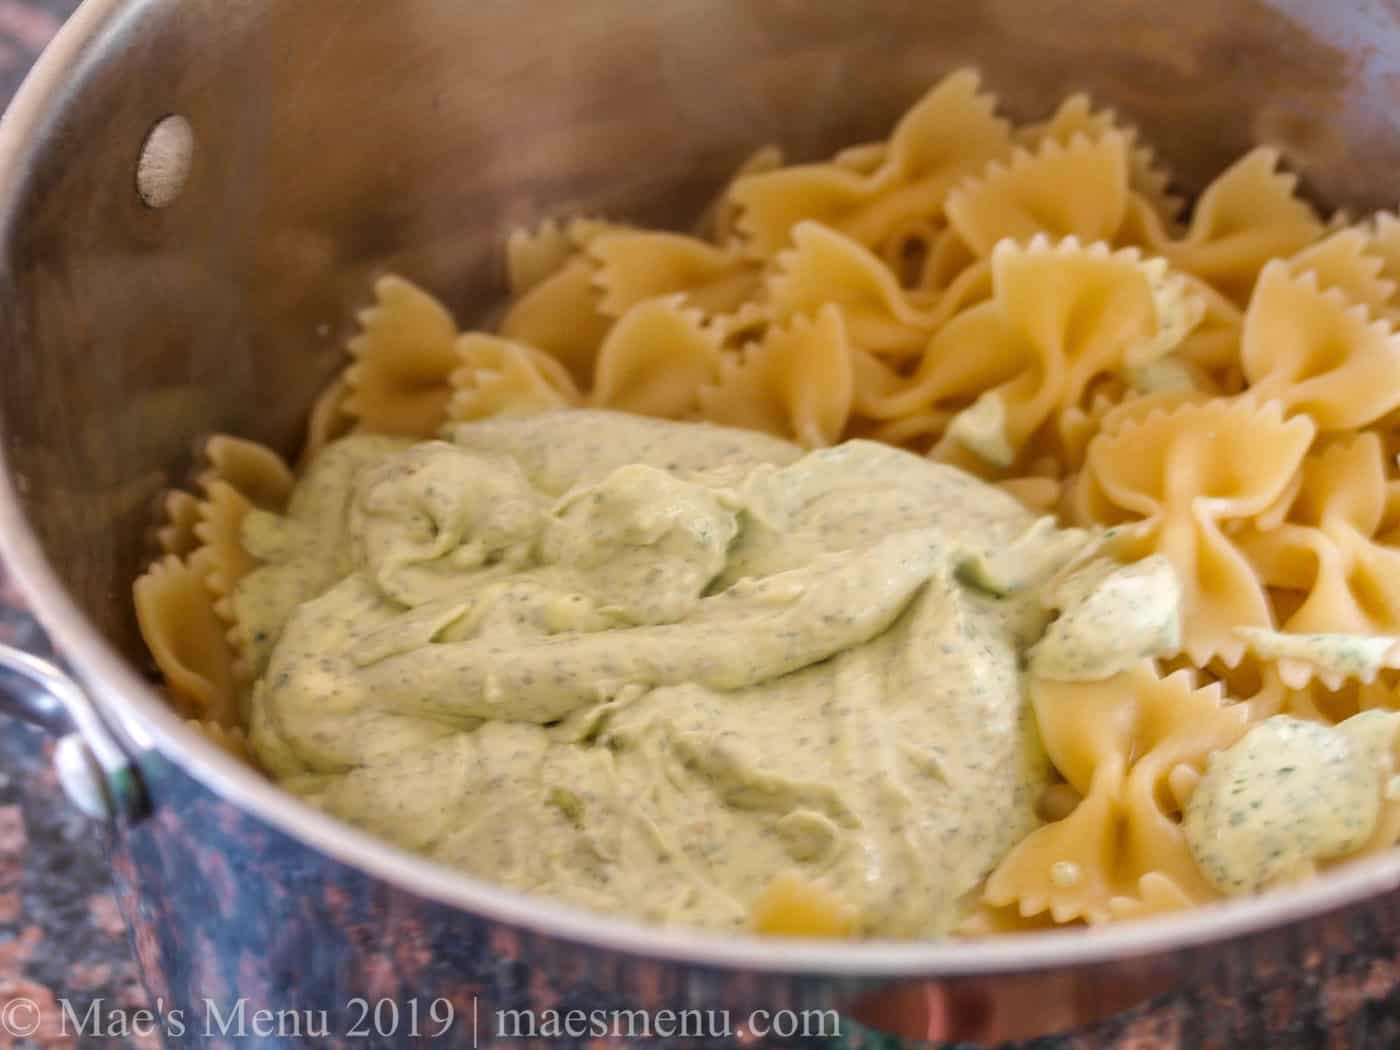 Tossing the creamy chimichurri with the cooked pasta.